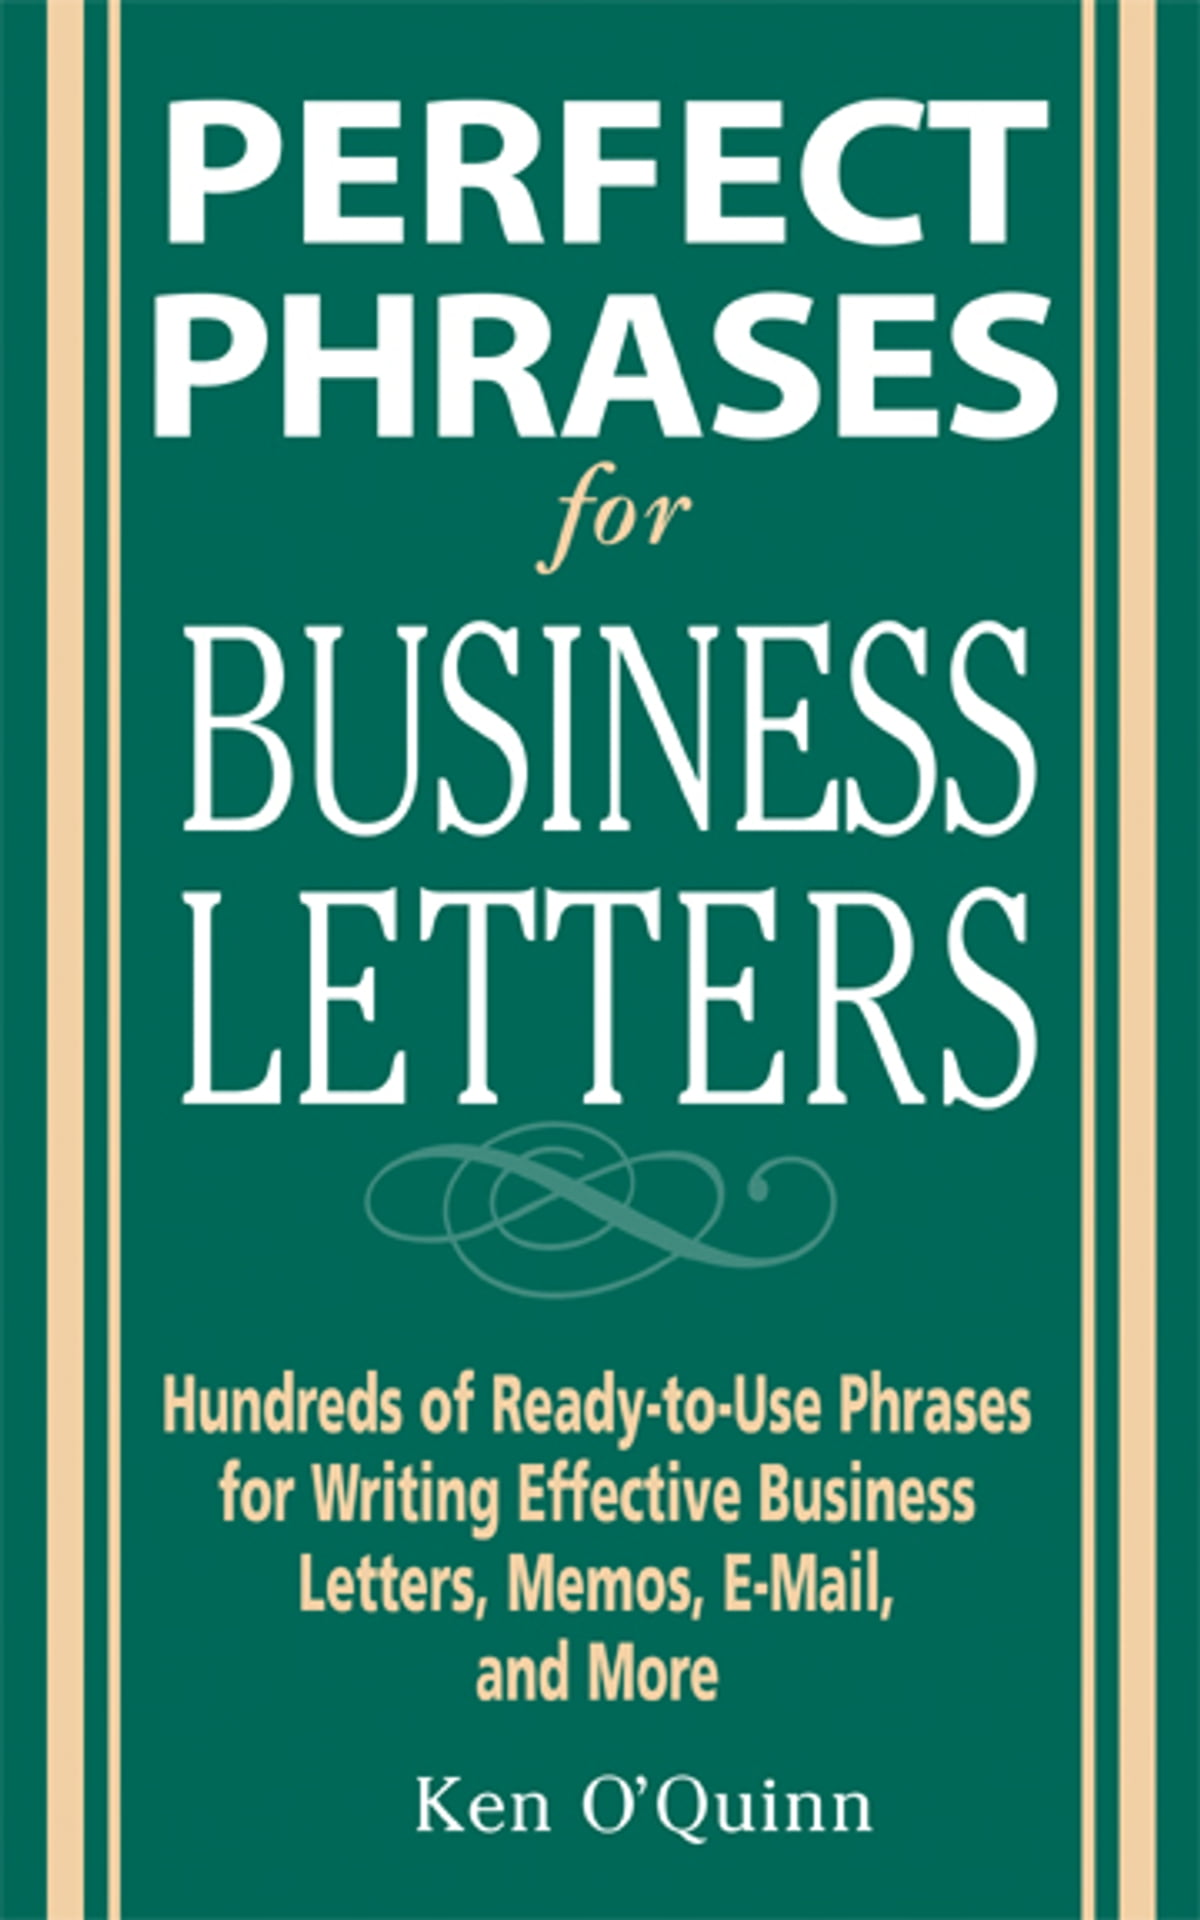 Perfect Phrases for Business Letters eBook by Ken O'Quinn - 9780071630900 |  Rakuten Kobo